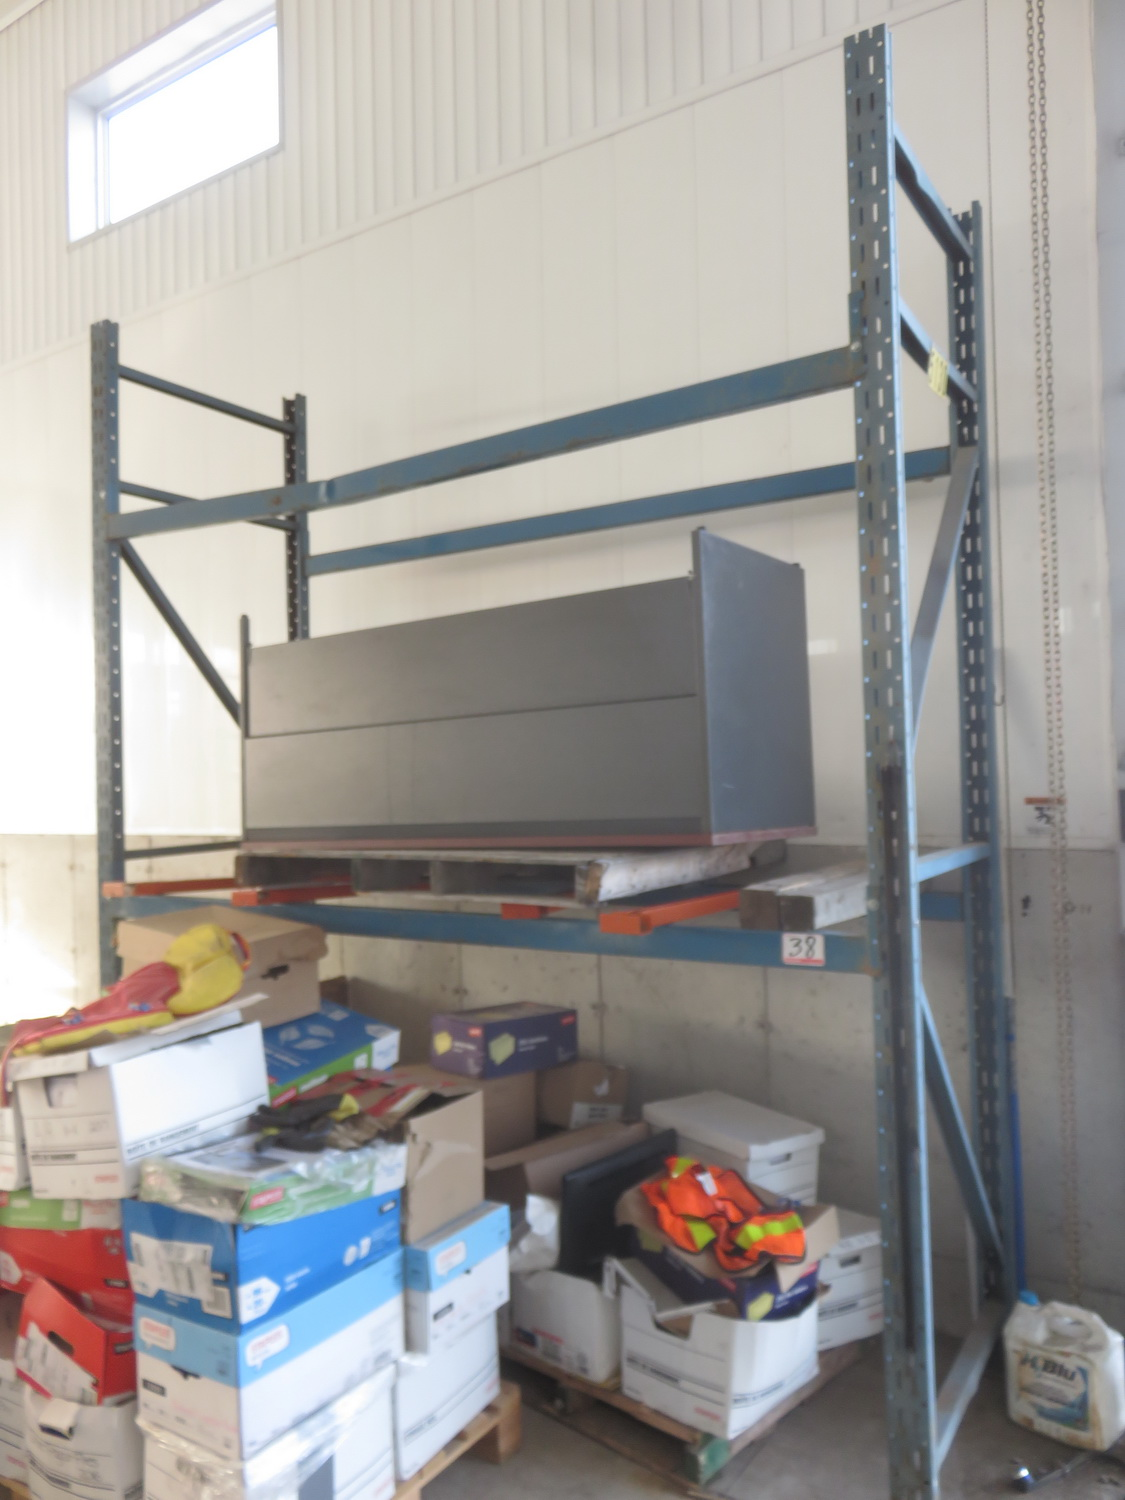 SECTION - BLUE STEEL 36 X 8 X136 PALLET TRACK